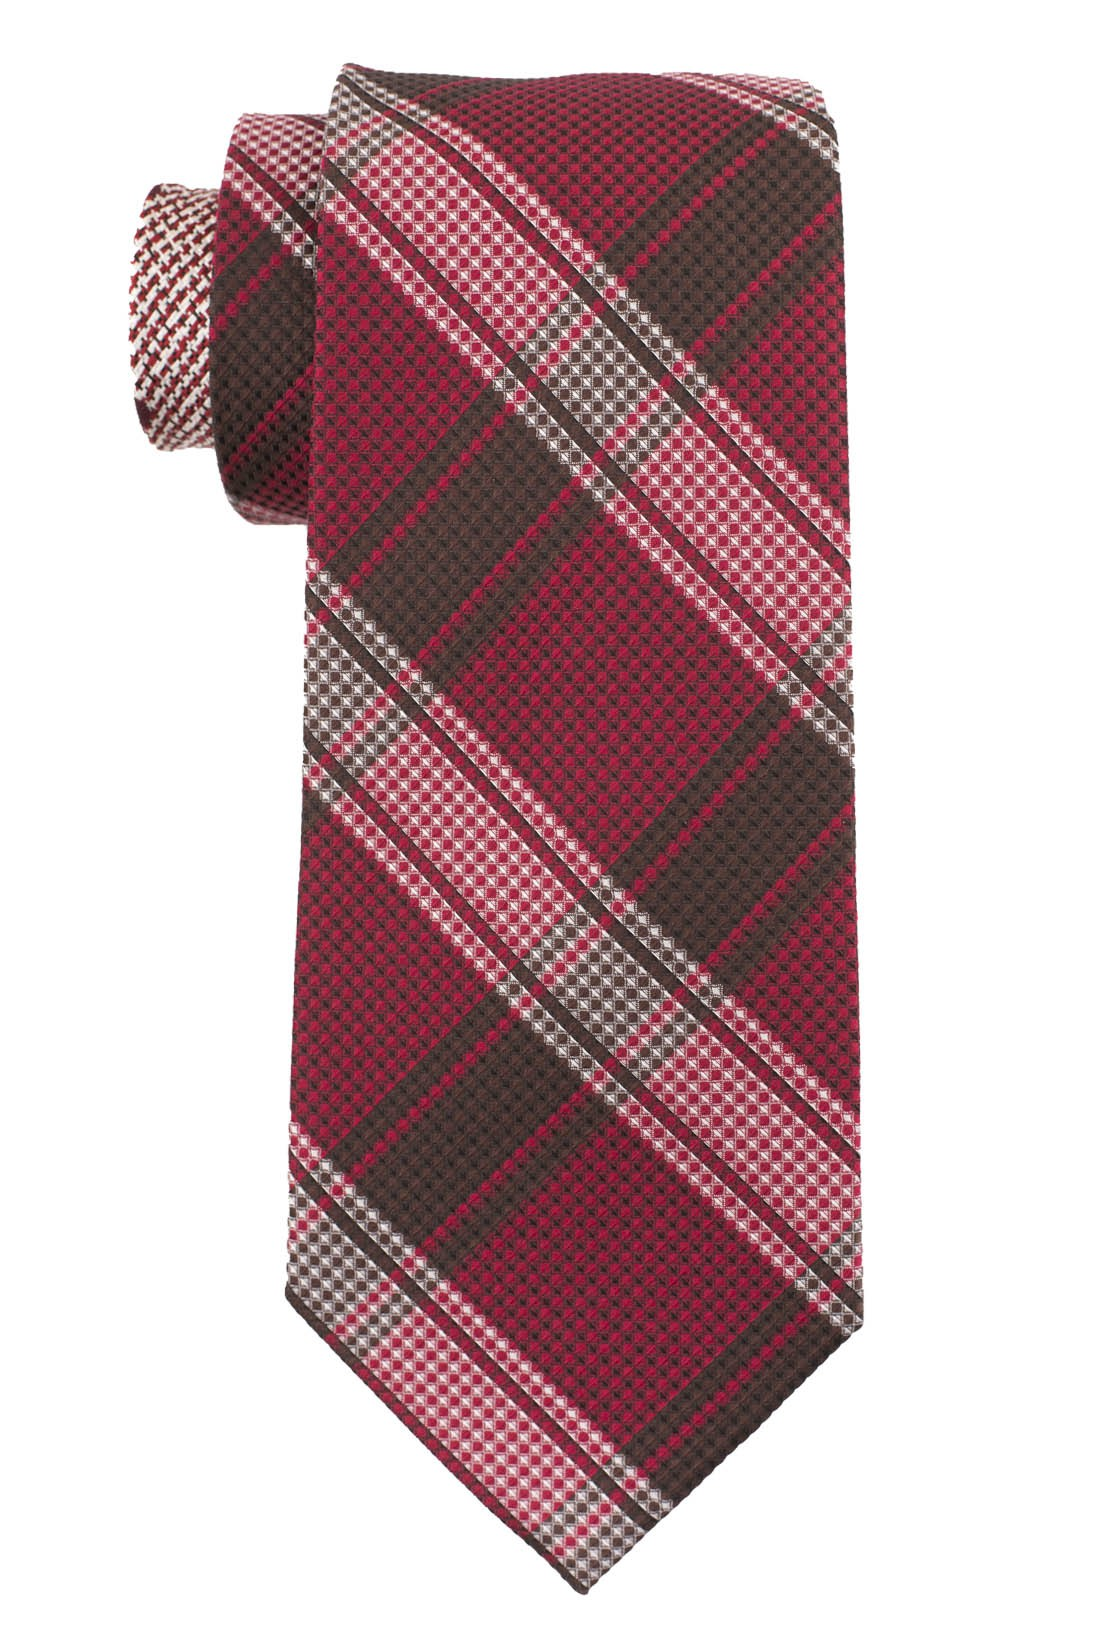 Wingman Plaid Red and Brown 100% Silk Necktie